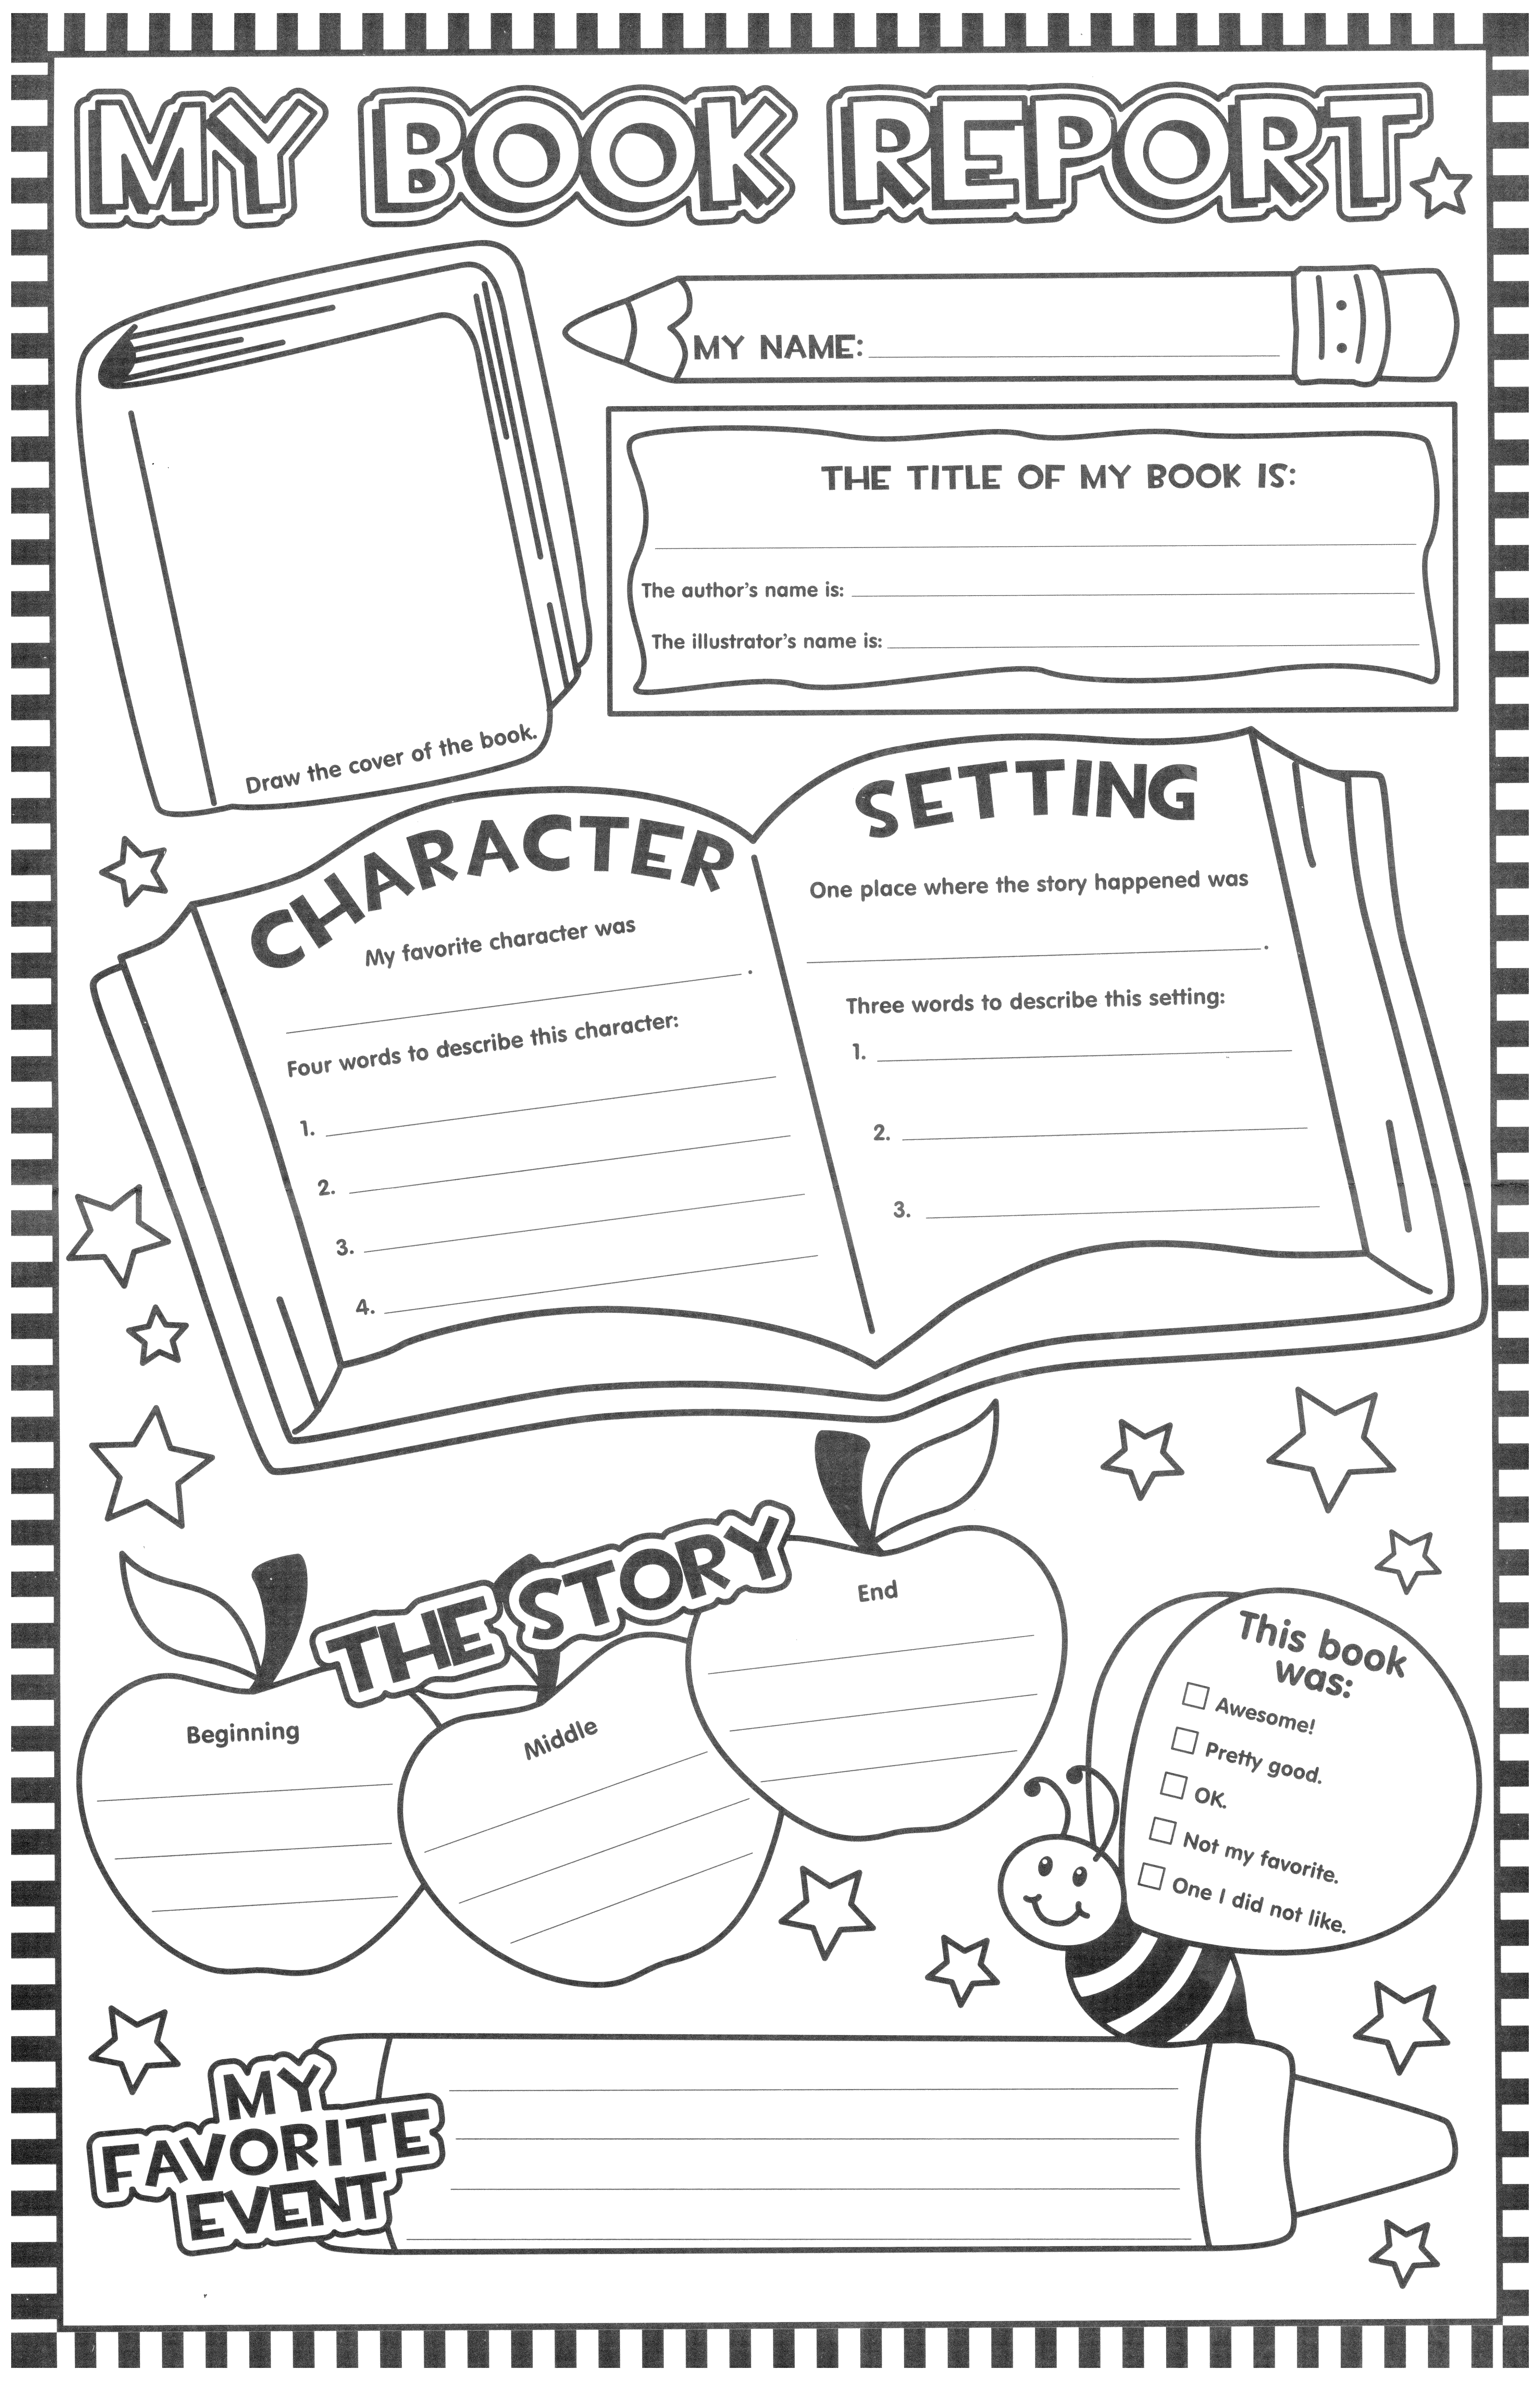 Book Report Poster (Updated) | Squarehead Teachers - Free Printable Book Report Forms For Elementary Students